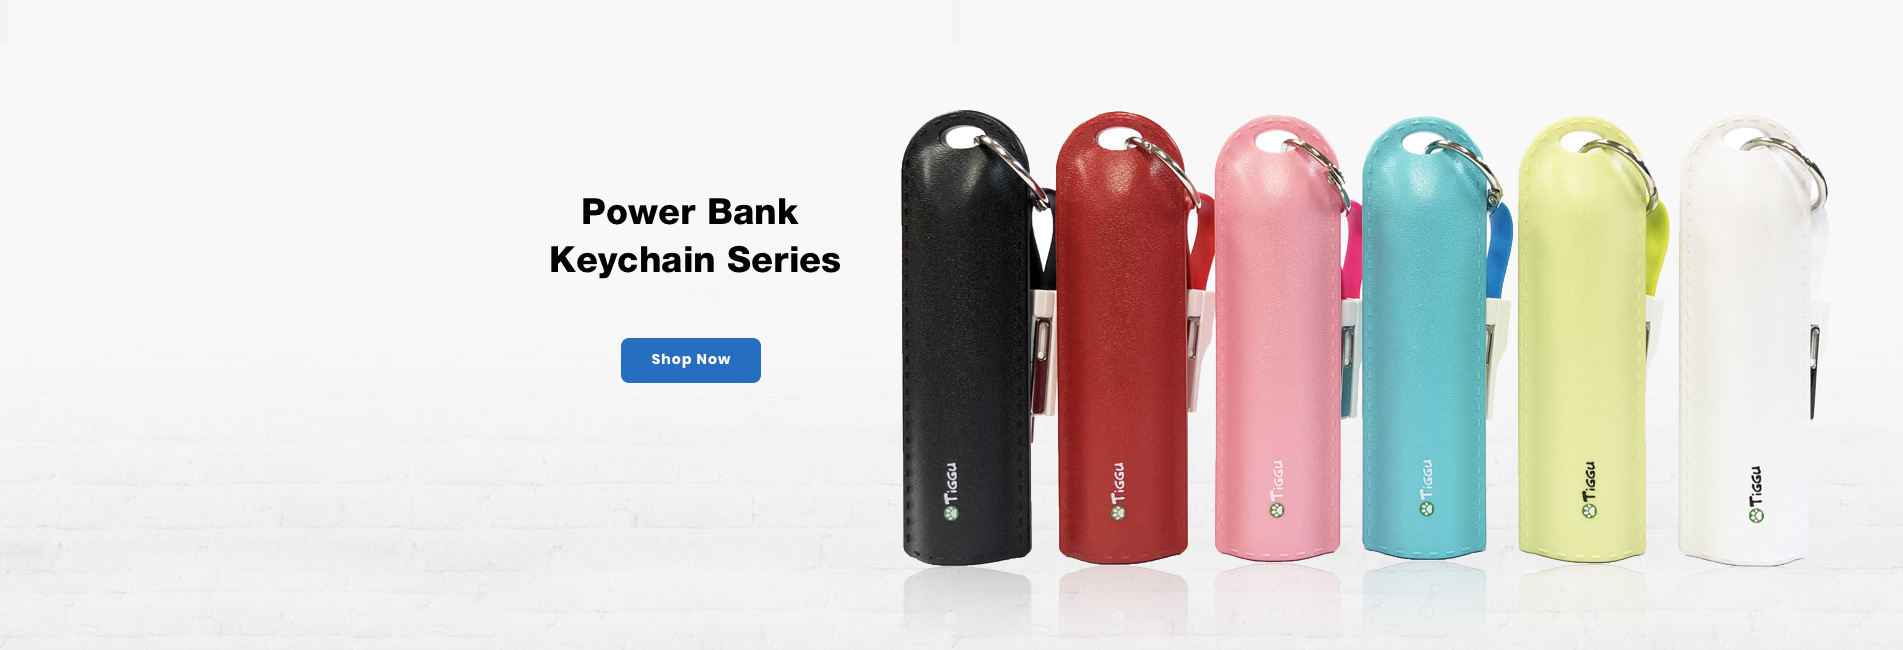 Power Bank - Keychain Series